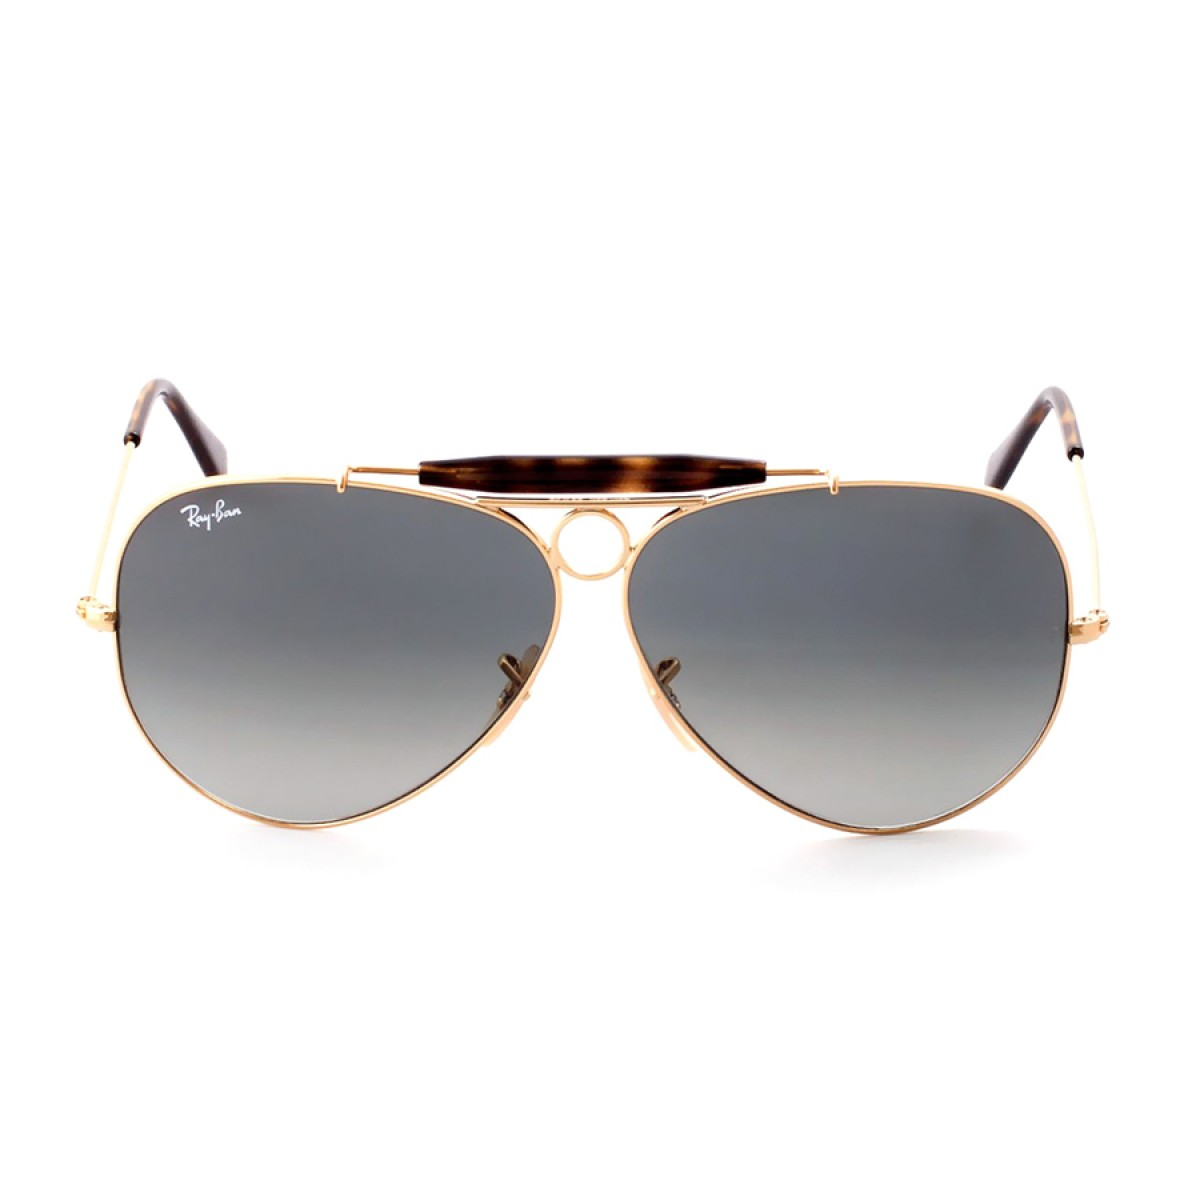 0126fc98a0ad9 Ray Ban Shooter Havana Unisex Sunglasses RB3138-181 71 - Sunglasses ...